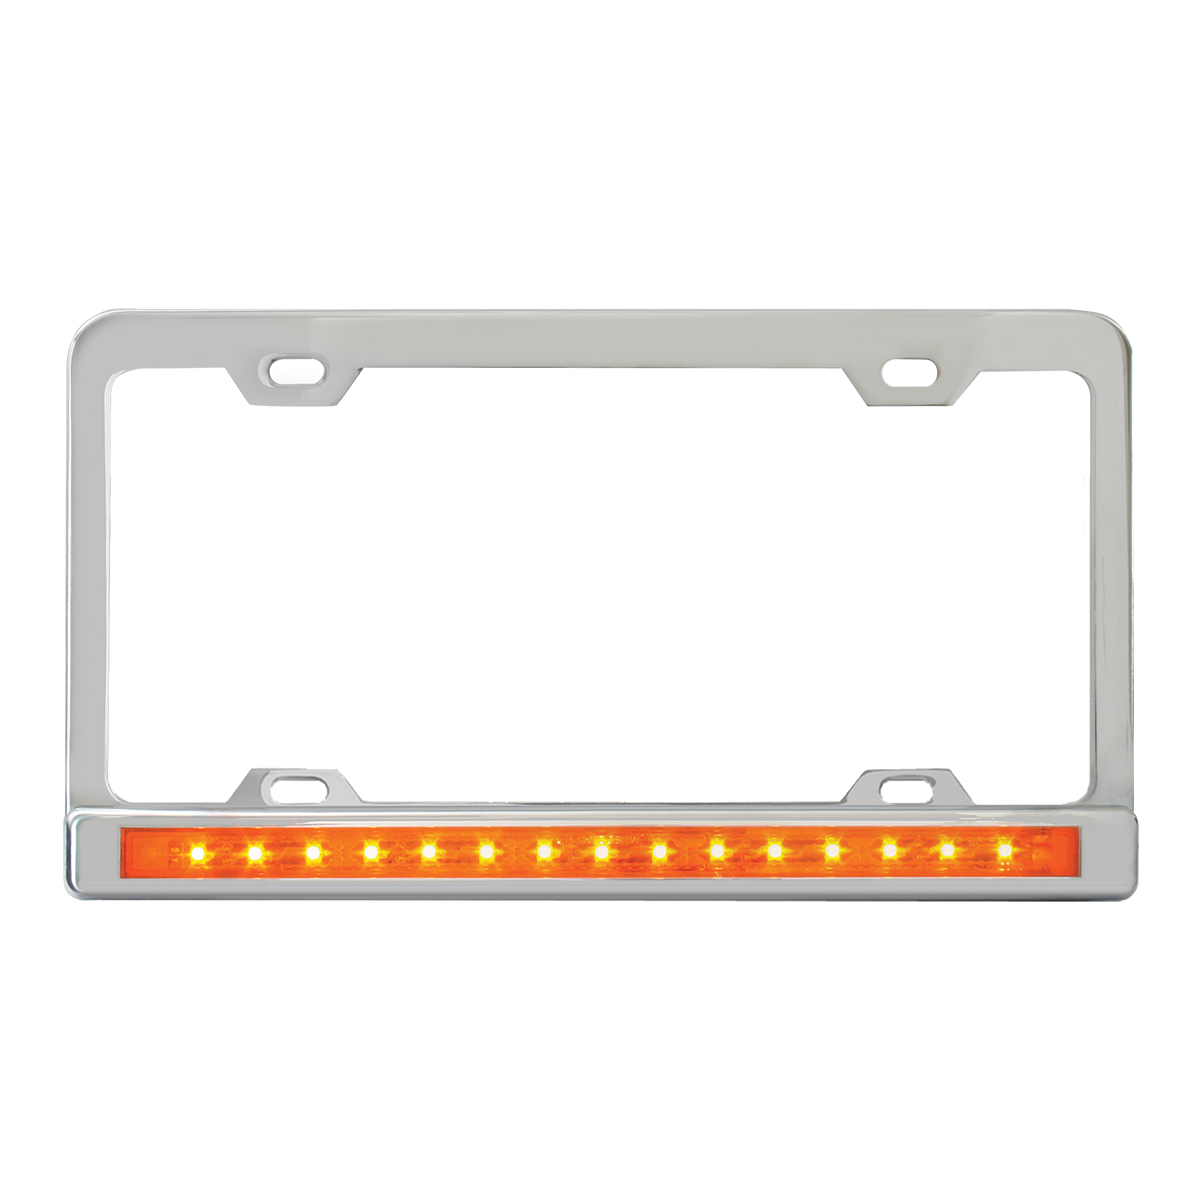 "Chrome Plated Steel 4 Holes License Plate Frame with 12"" LED Amber/Amber"